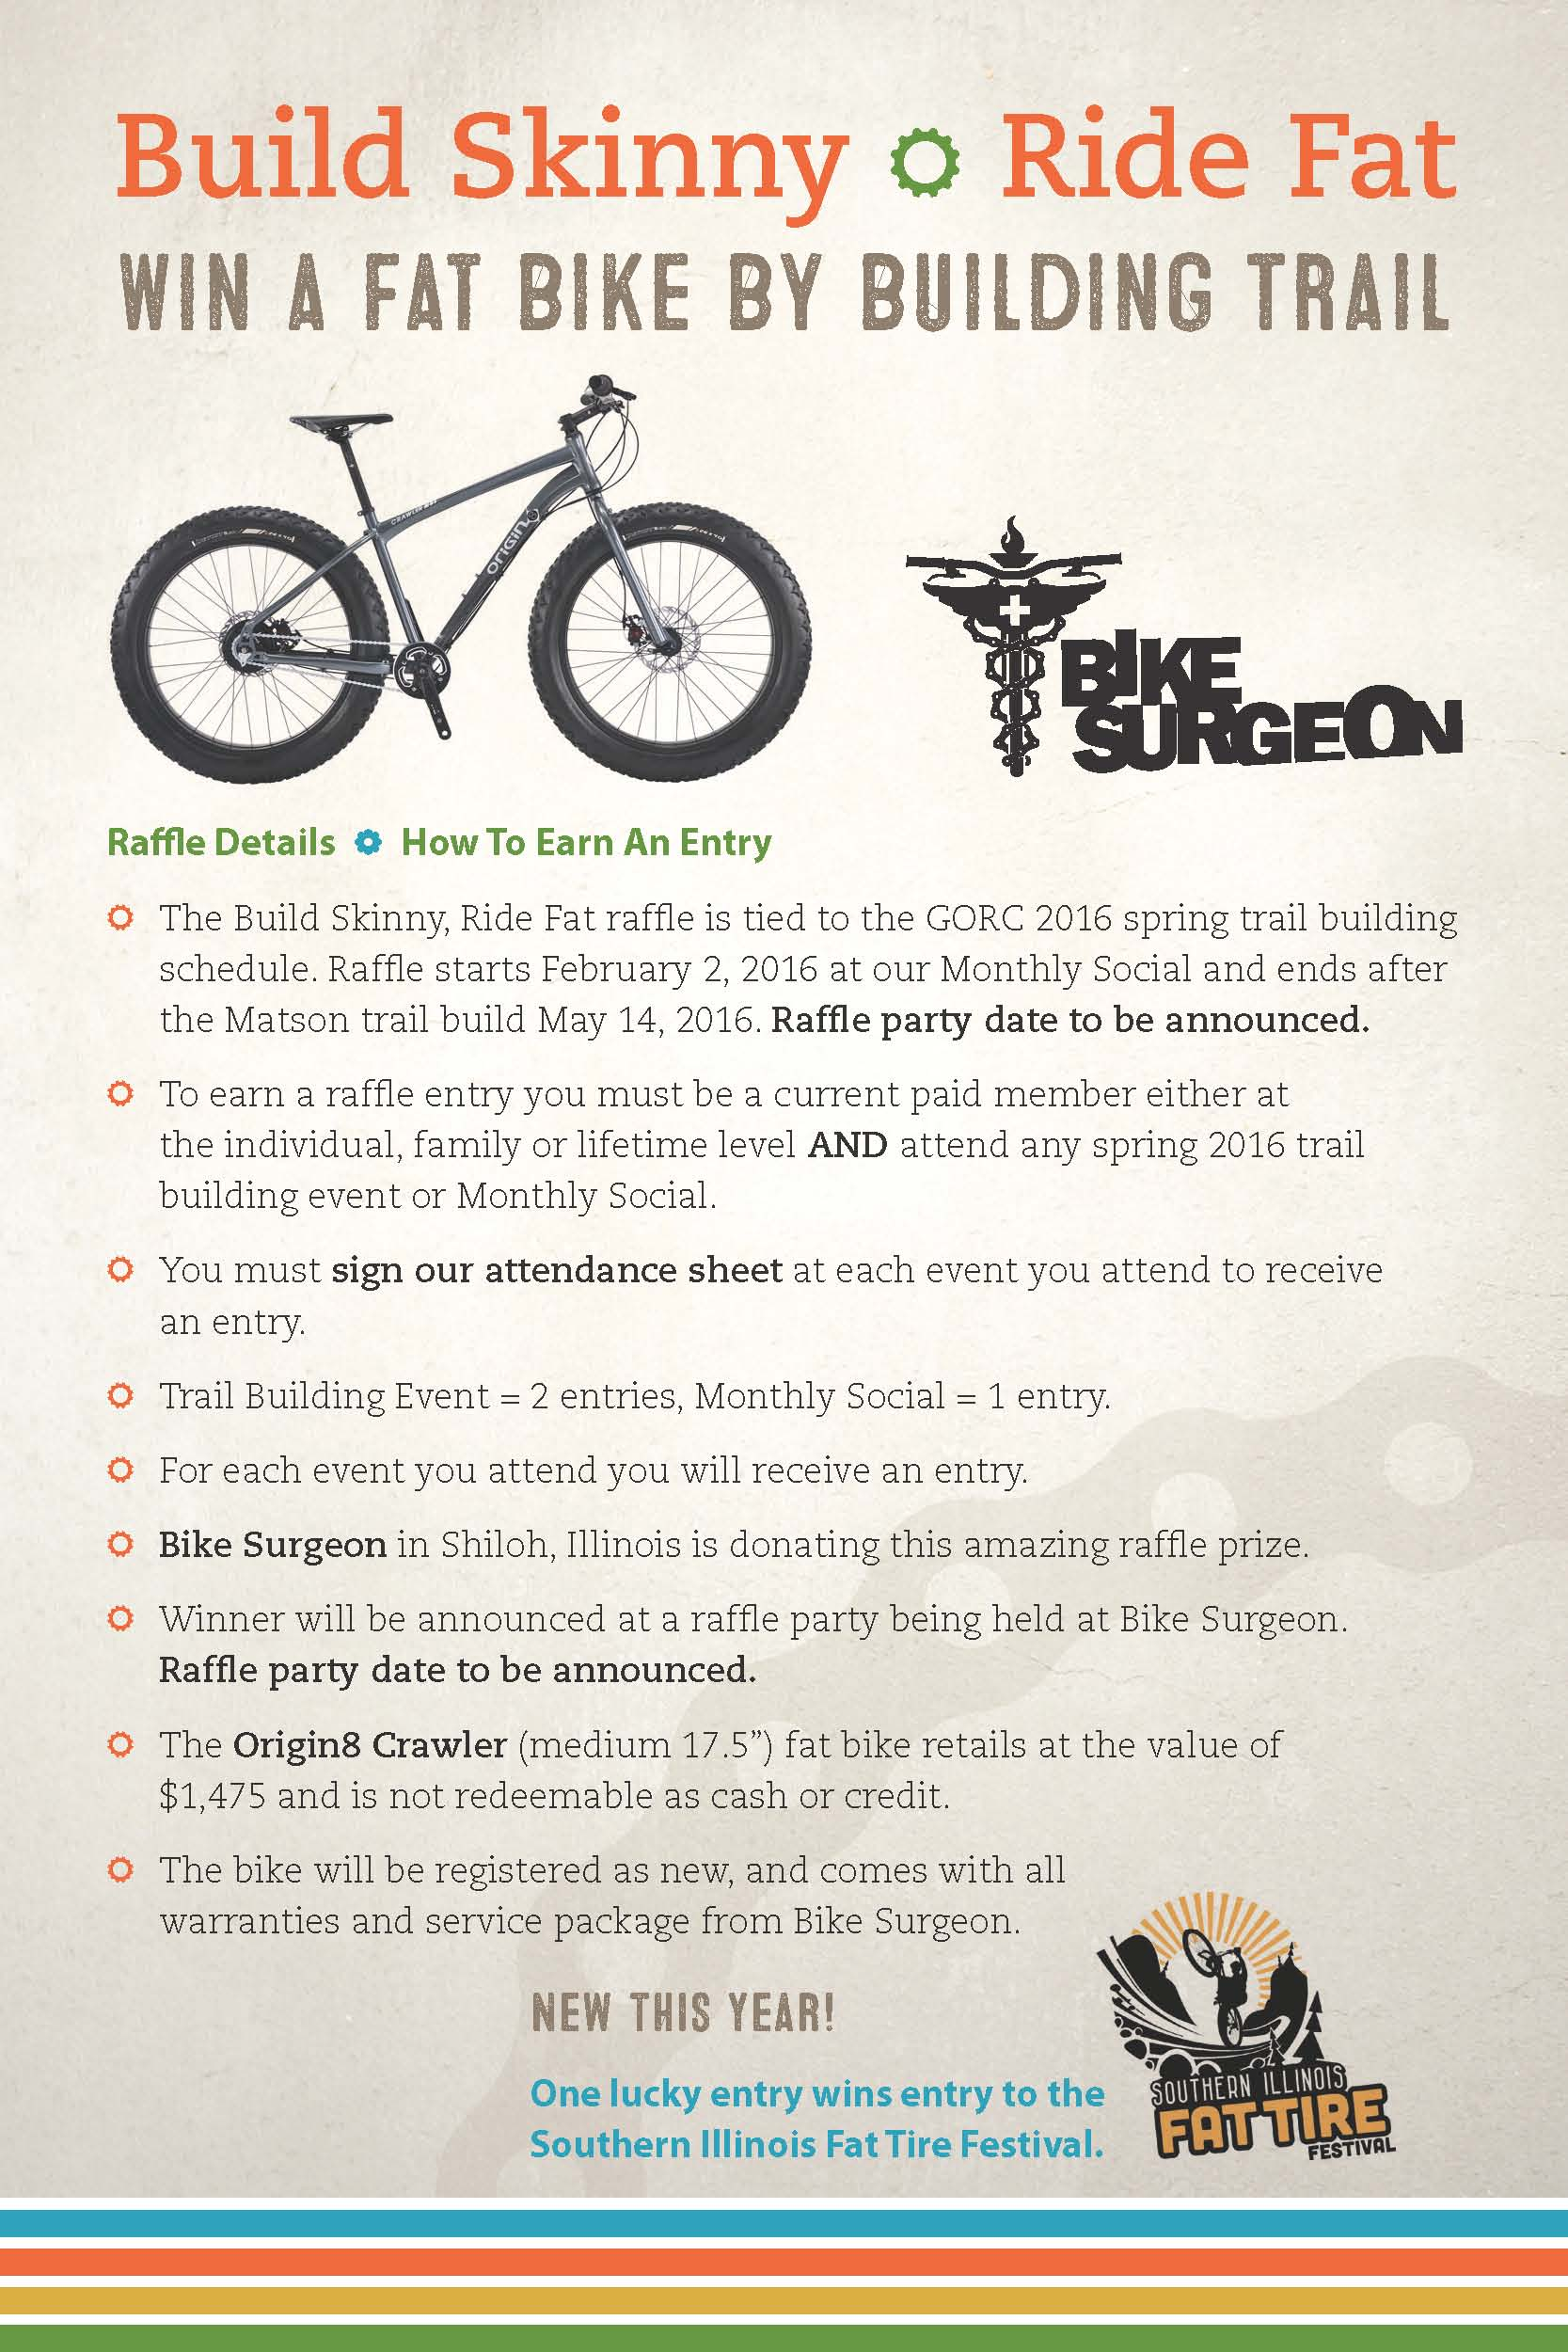 Spring 2016 Trail Building Bike Raffle presented by Bike Surgeon and GORC